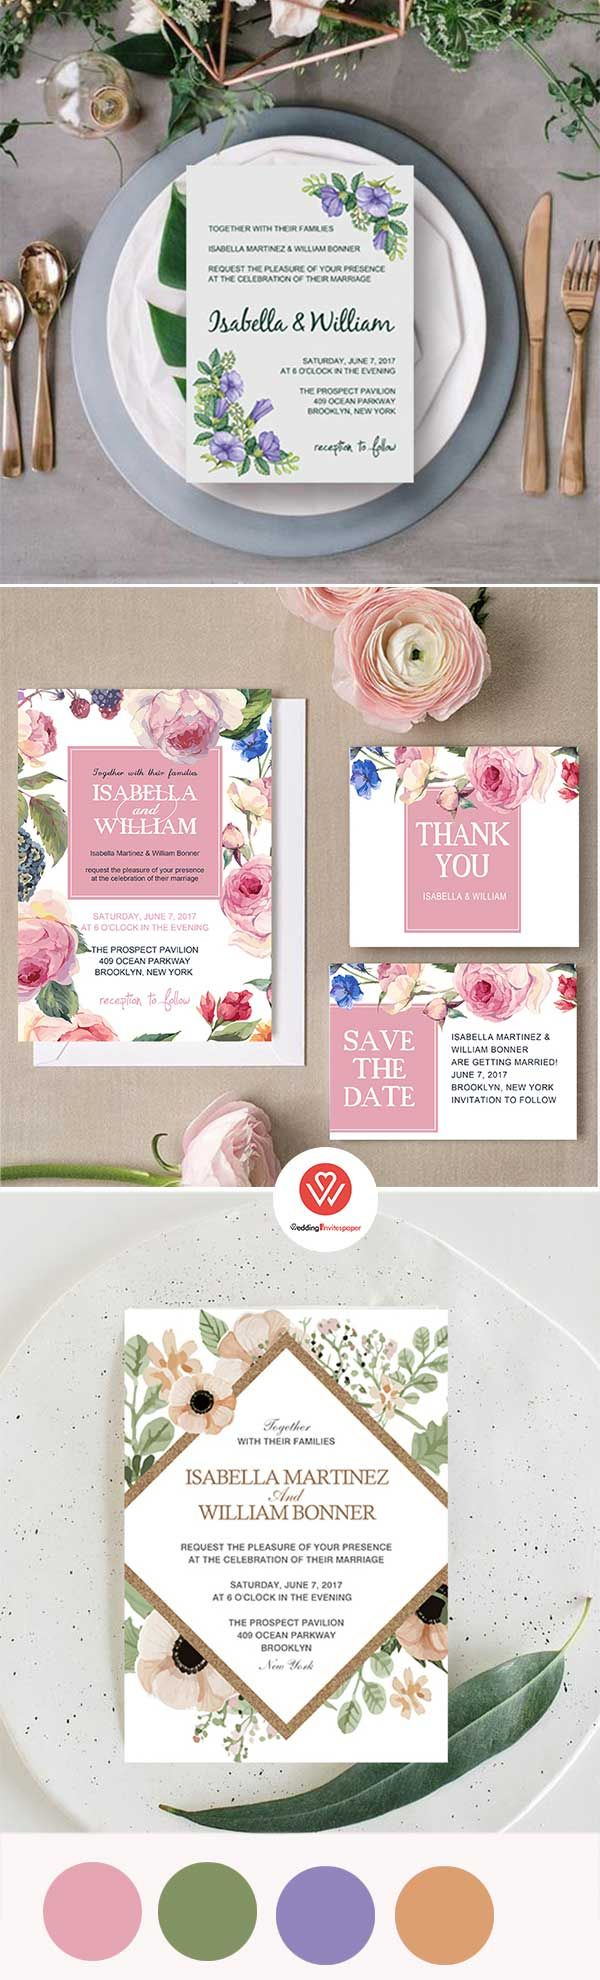 35 Unique Inexpensive Wedding Invitations From WIP - Wedding Invites ...